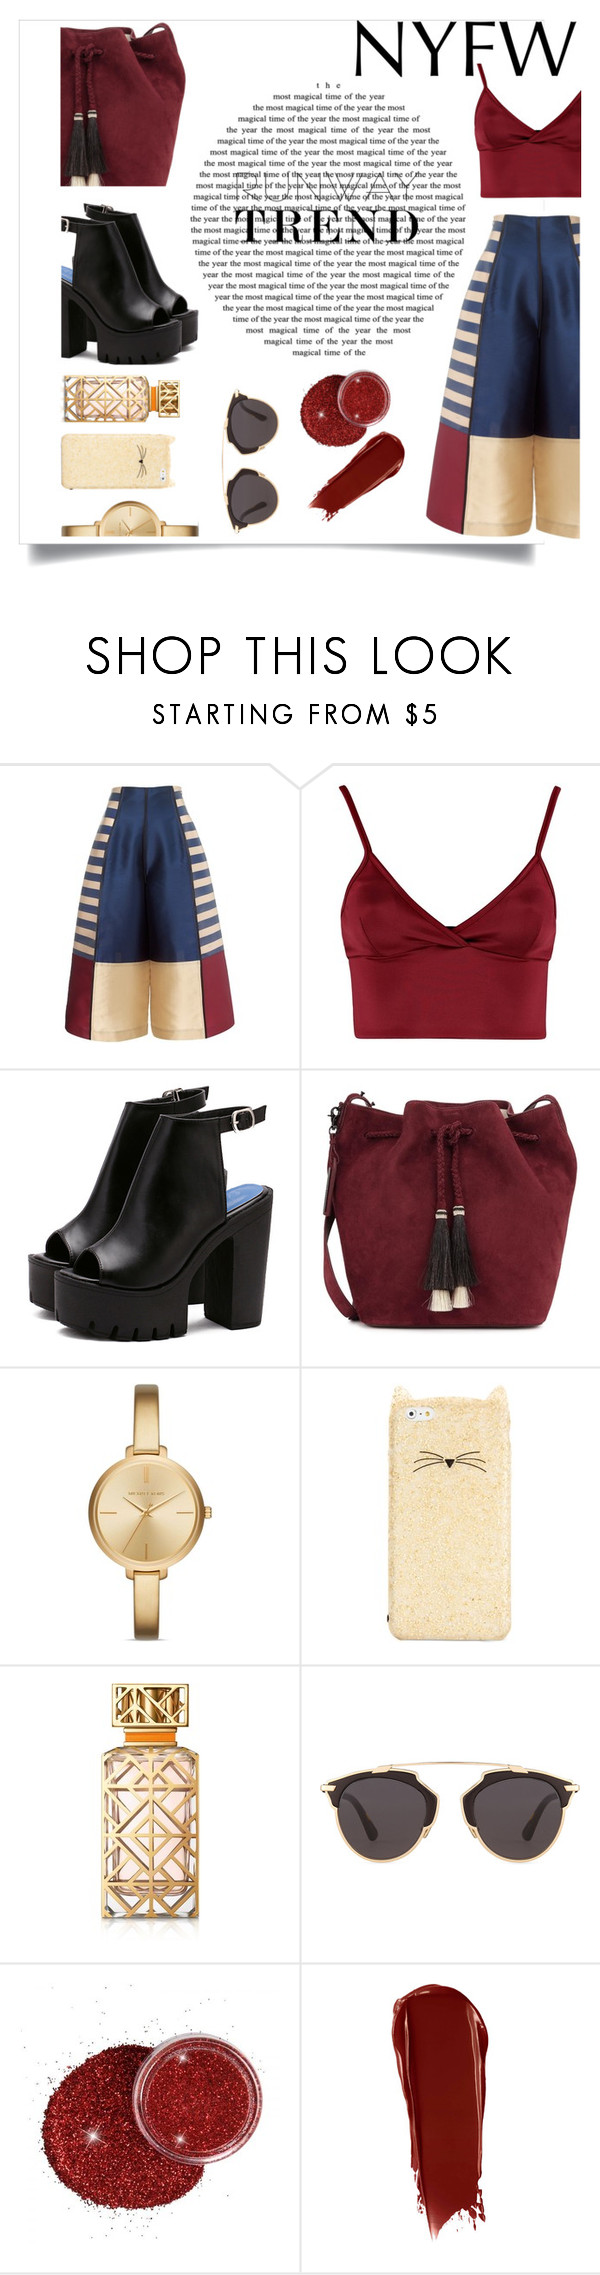 """""""Nyfw style"""" by harrariz ❤ liked on Polyvore featuring Lipsy, Loeffler Randall, Michael Kors, Kate Spade, Tory Burch, Christian Dior and NARS Cosmetics"""